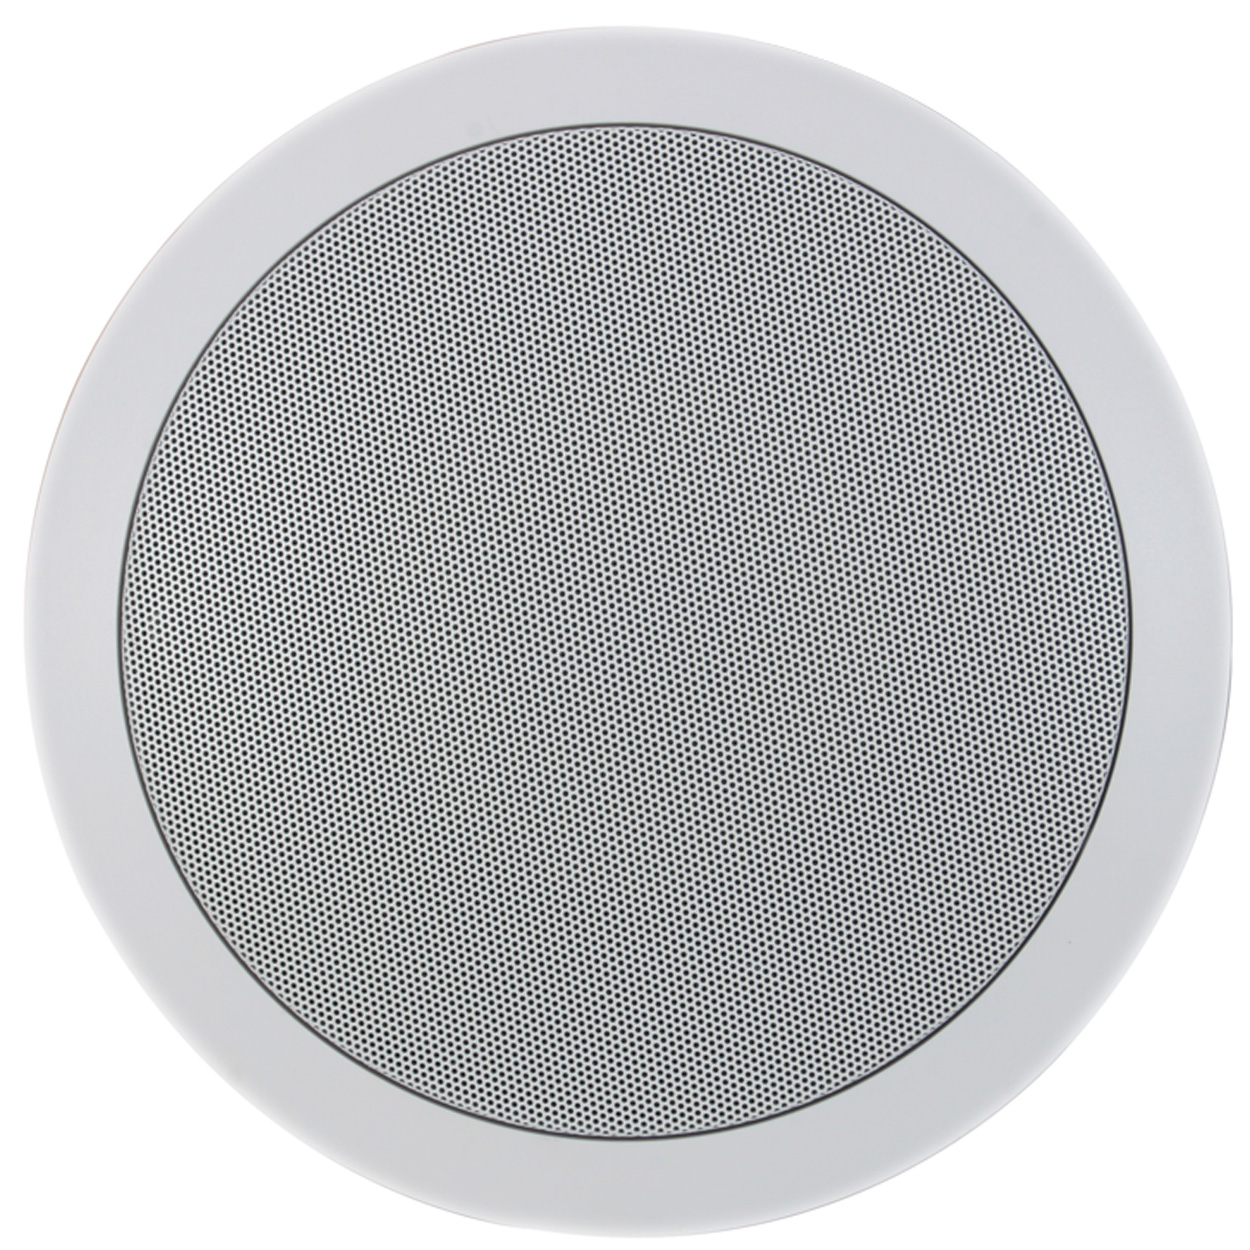 6.50 inch Kevlar 2-Way In-Ceiling Speakers (60W Nominal, 120W Maximum, 8 Ohm Impedance) - 2pcs/set